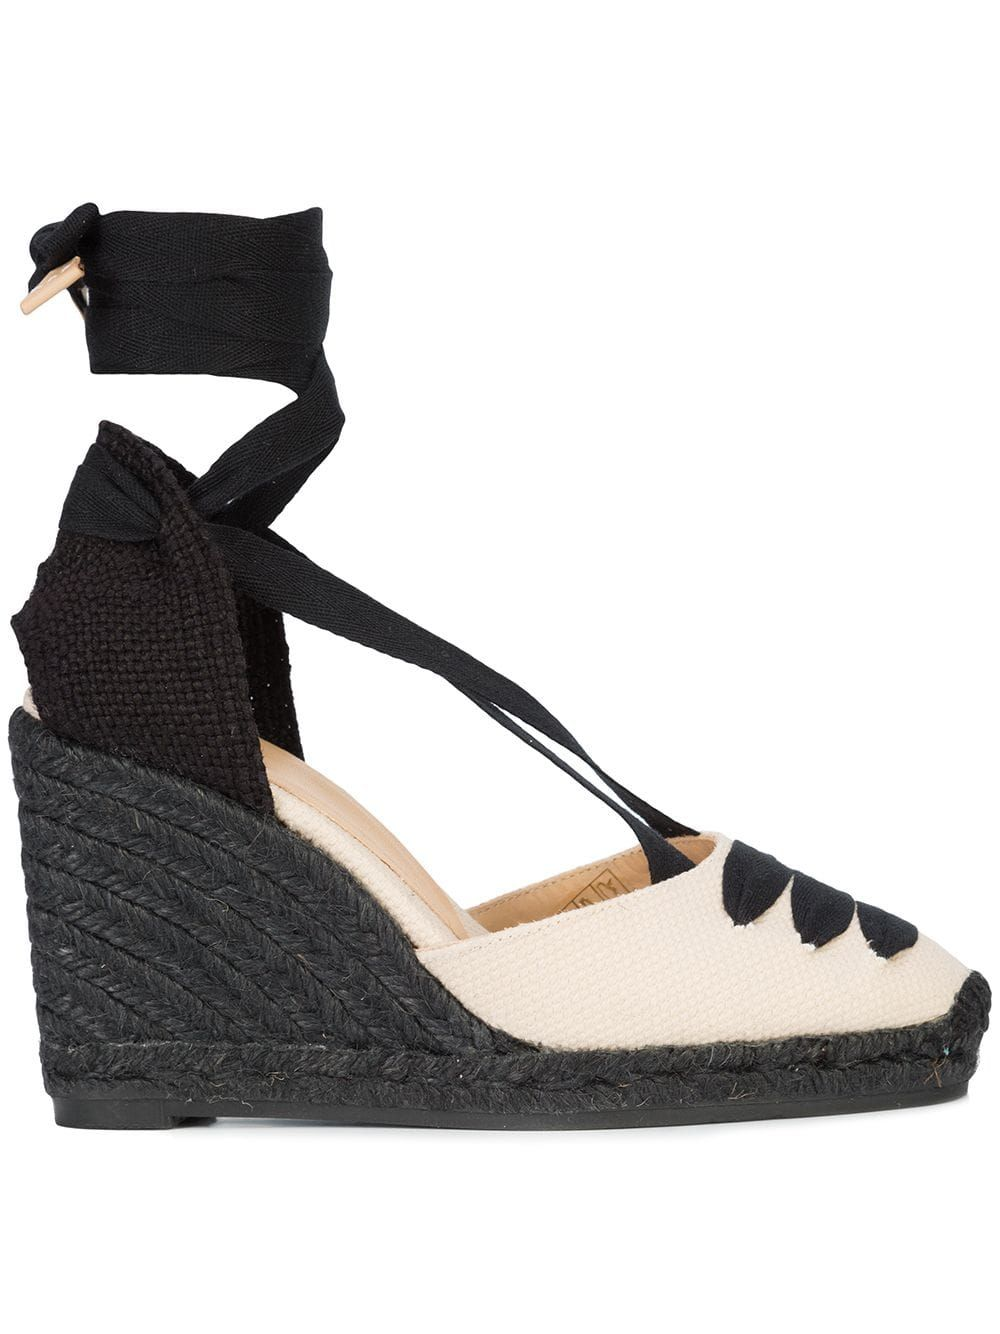 38b1f8d66e9 Castañer Coralia wedge espadrilles - Neutrals | Products in 2019 ...